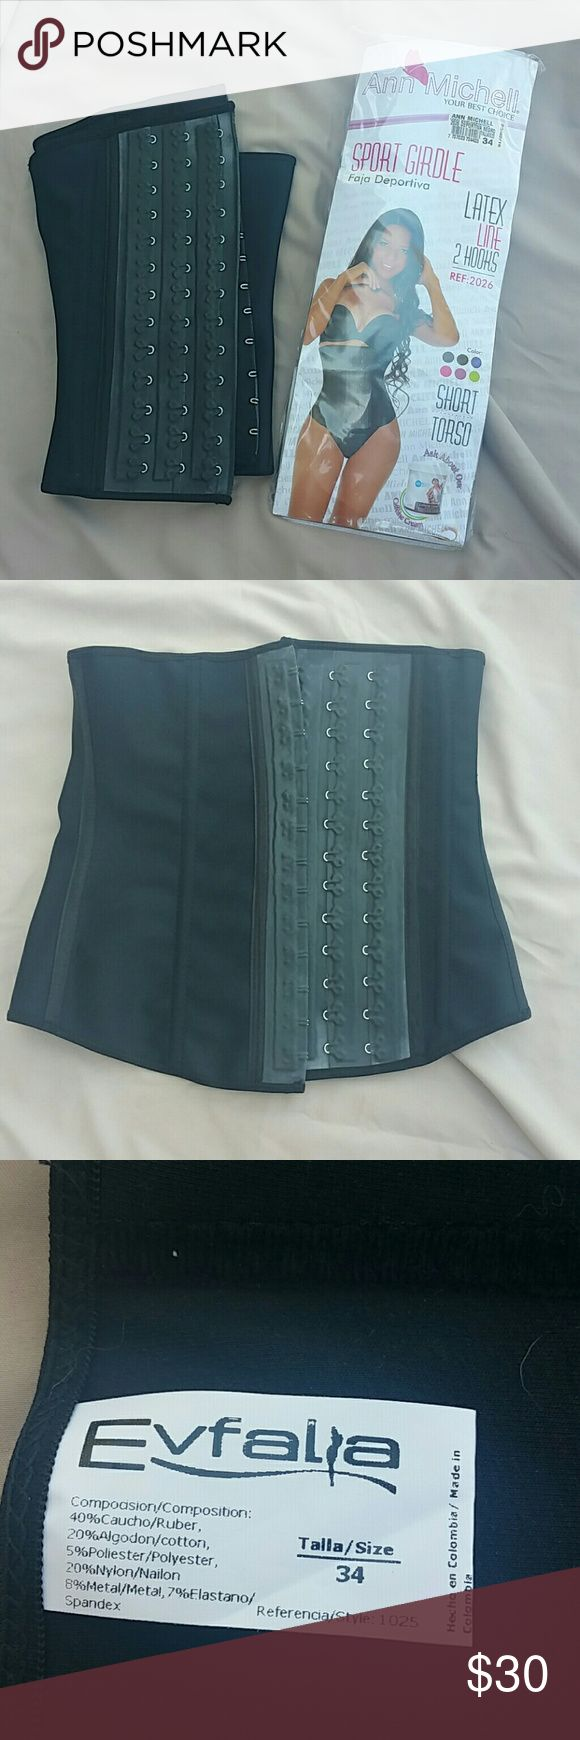 Waist Trainer I love these!! But this brand runs a lil small (and tbh i gained a lil in the middle...) so i was unable to wear it comfortably, and missed the return deadline. My loss your gain. I paid full price for this and it's worth every penny to get better posture and a smooth hour glass figure, ooo la la! This one is brand new, never worn, however WITHOUT original packaging. Evfalia Other